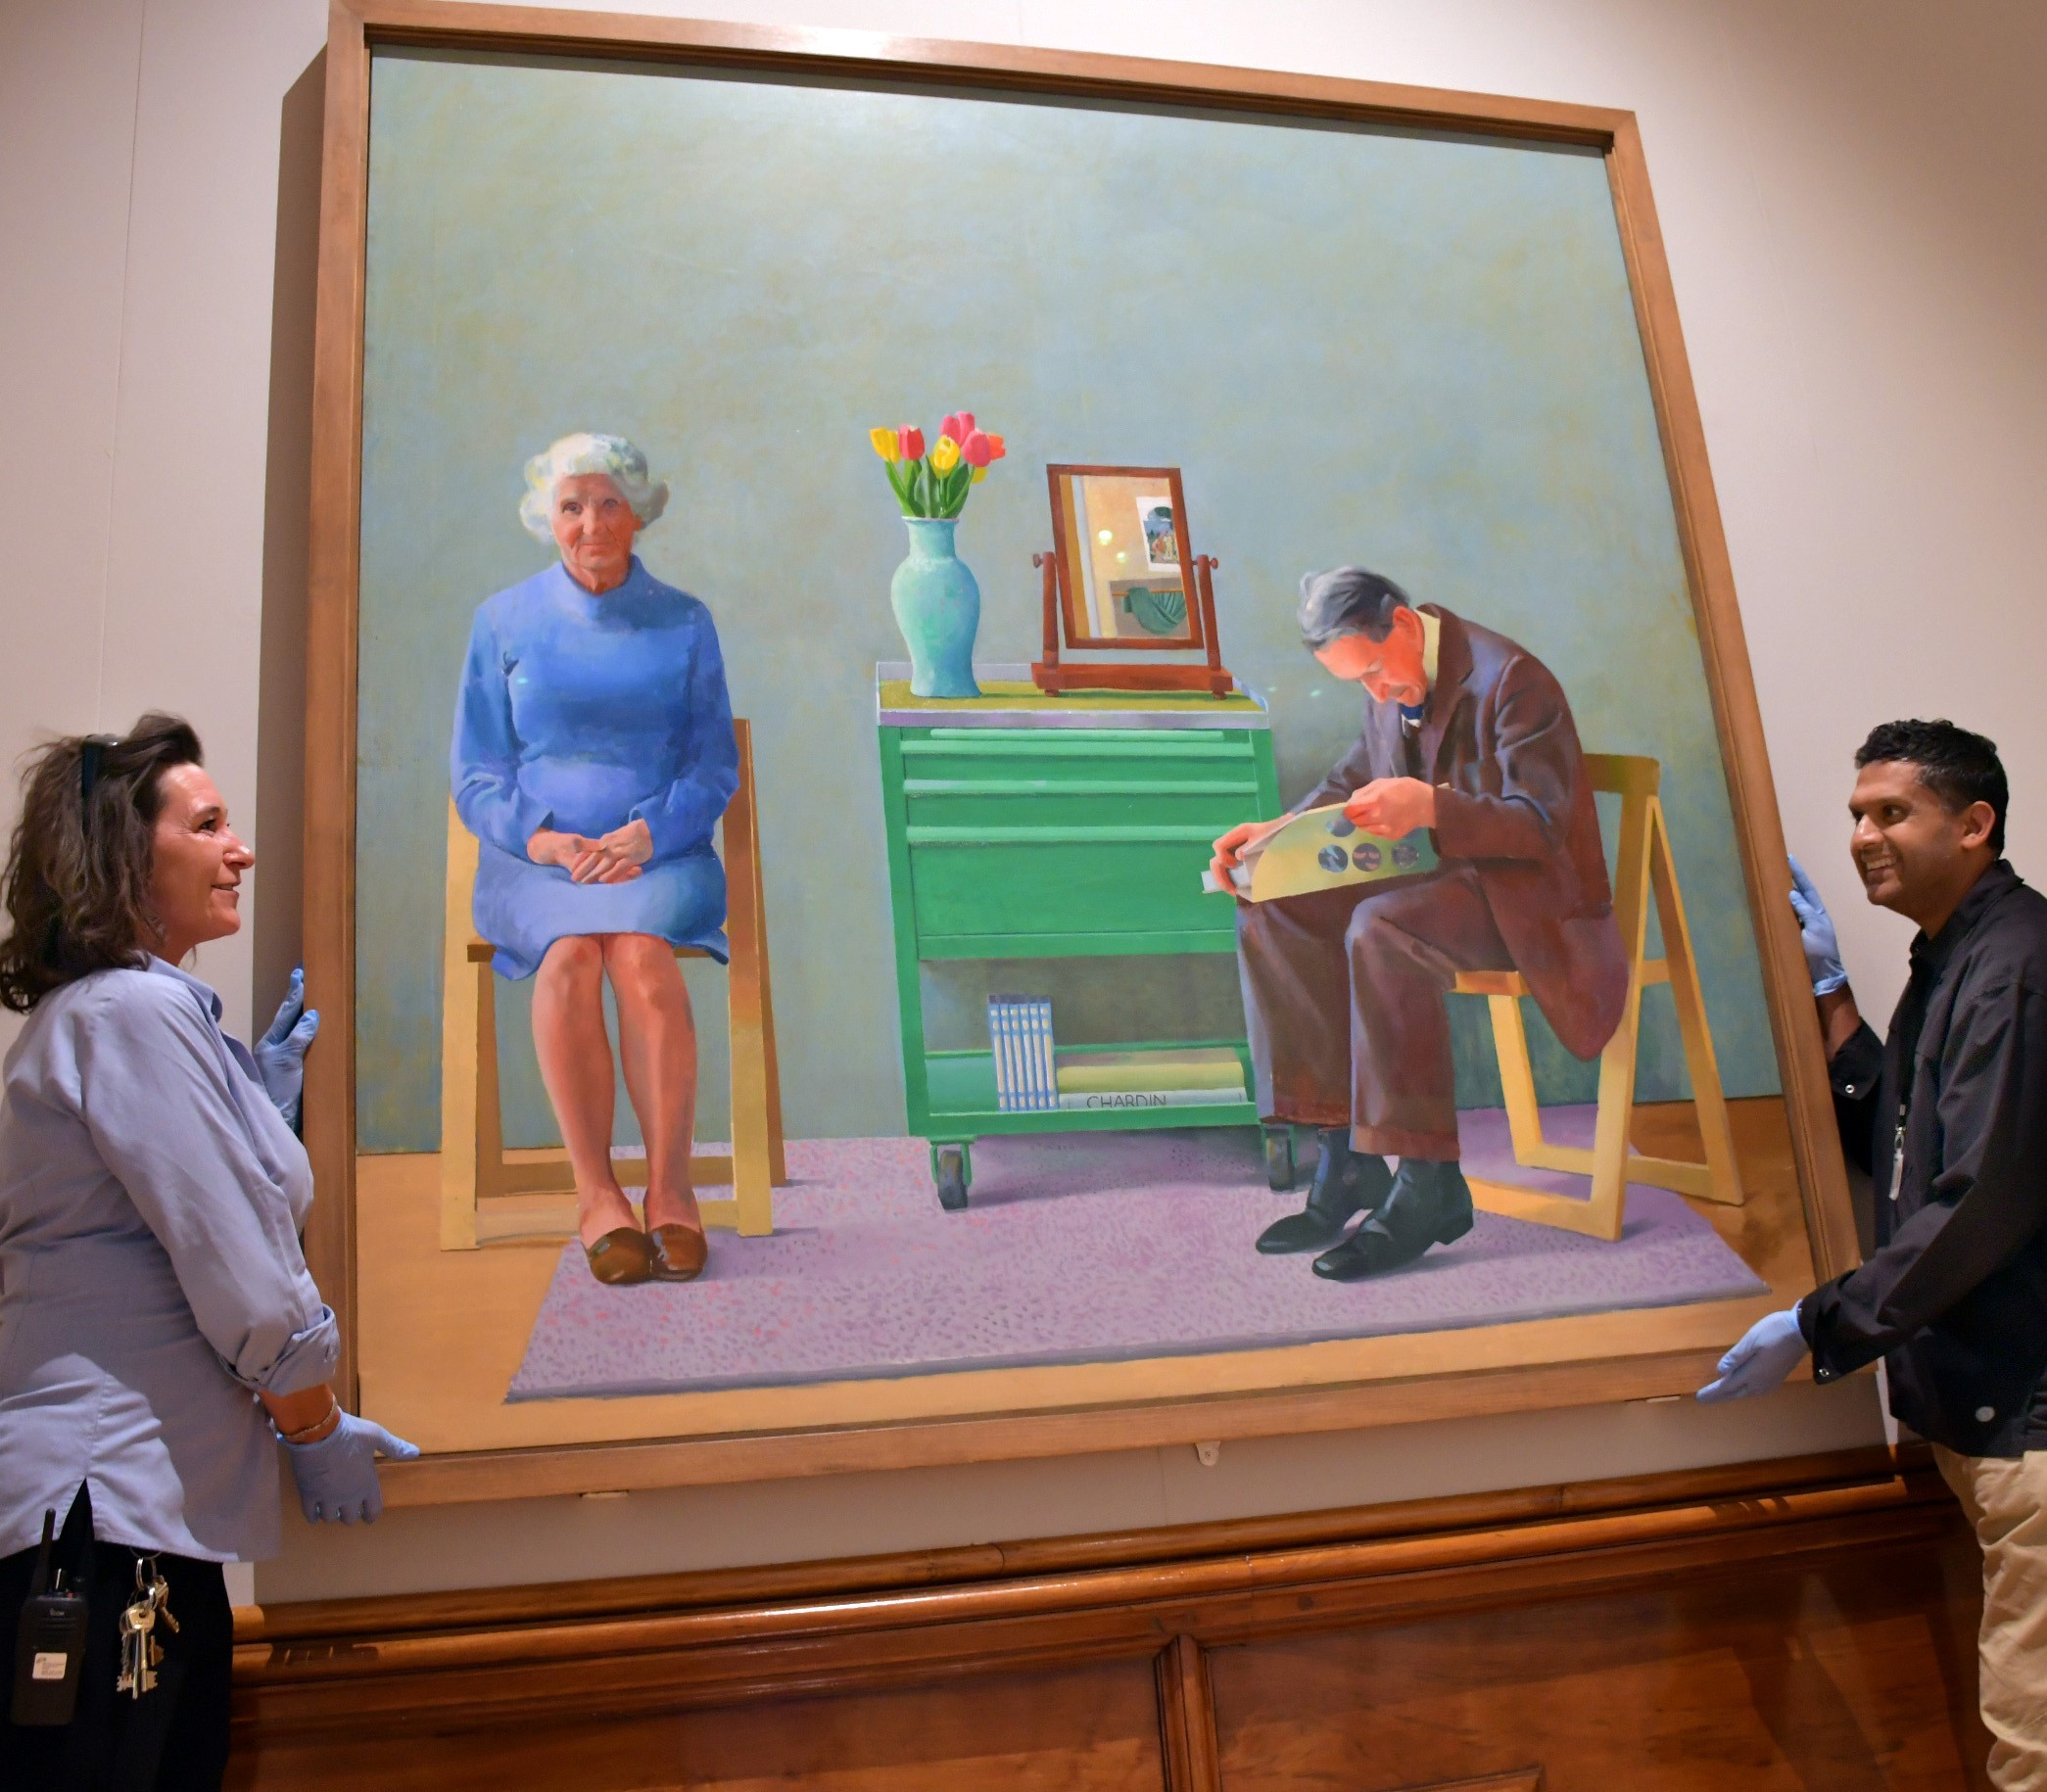 Hockney picture  loaned to the Cartwright Hall  by the Tate Gallery. Rowena Broadbent and Nilesh Mistry hang the picture.